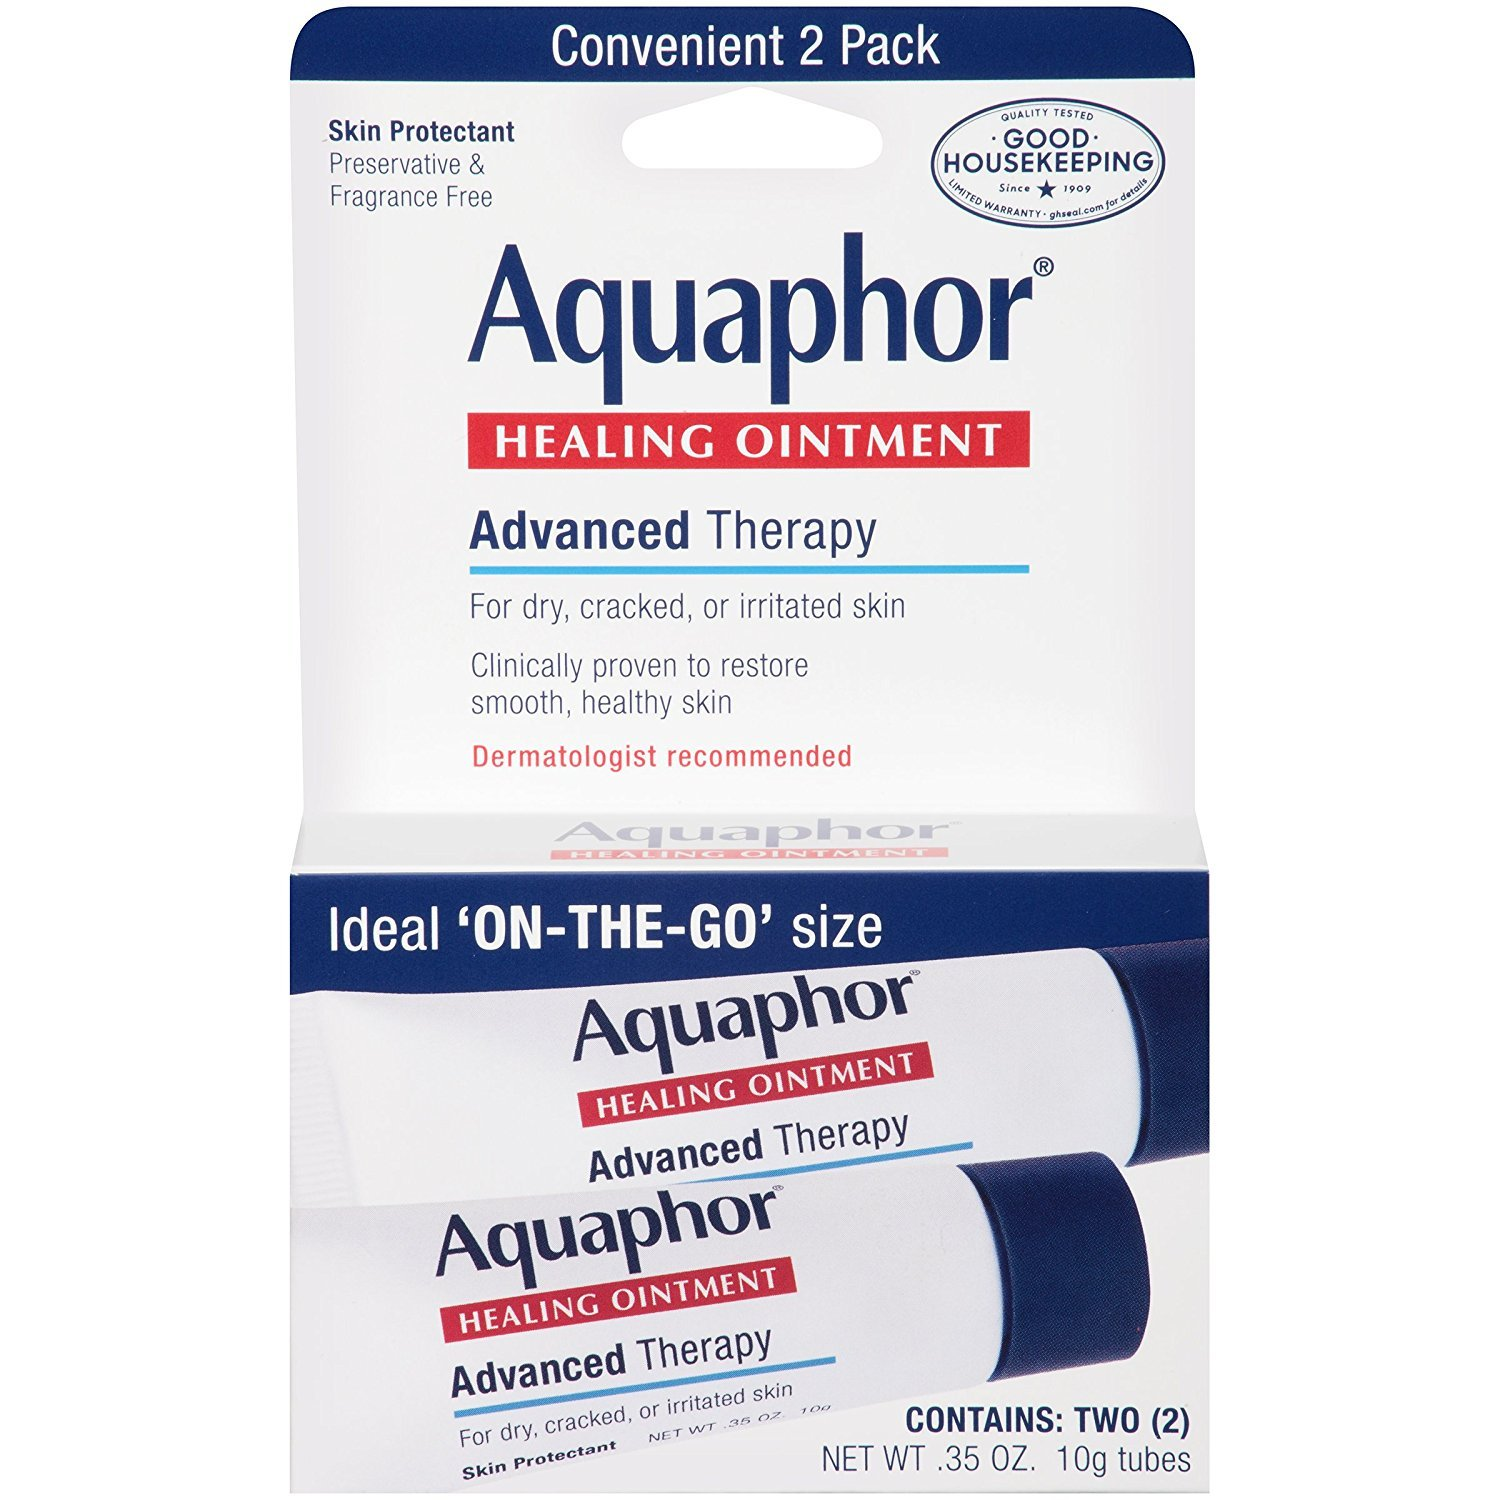 Aquaphor Healing Ointment 2 Count 0.35 Ounce (10ml) (6 Pack)